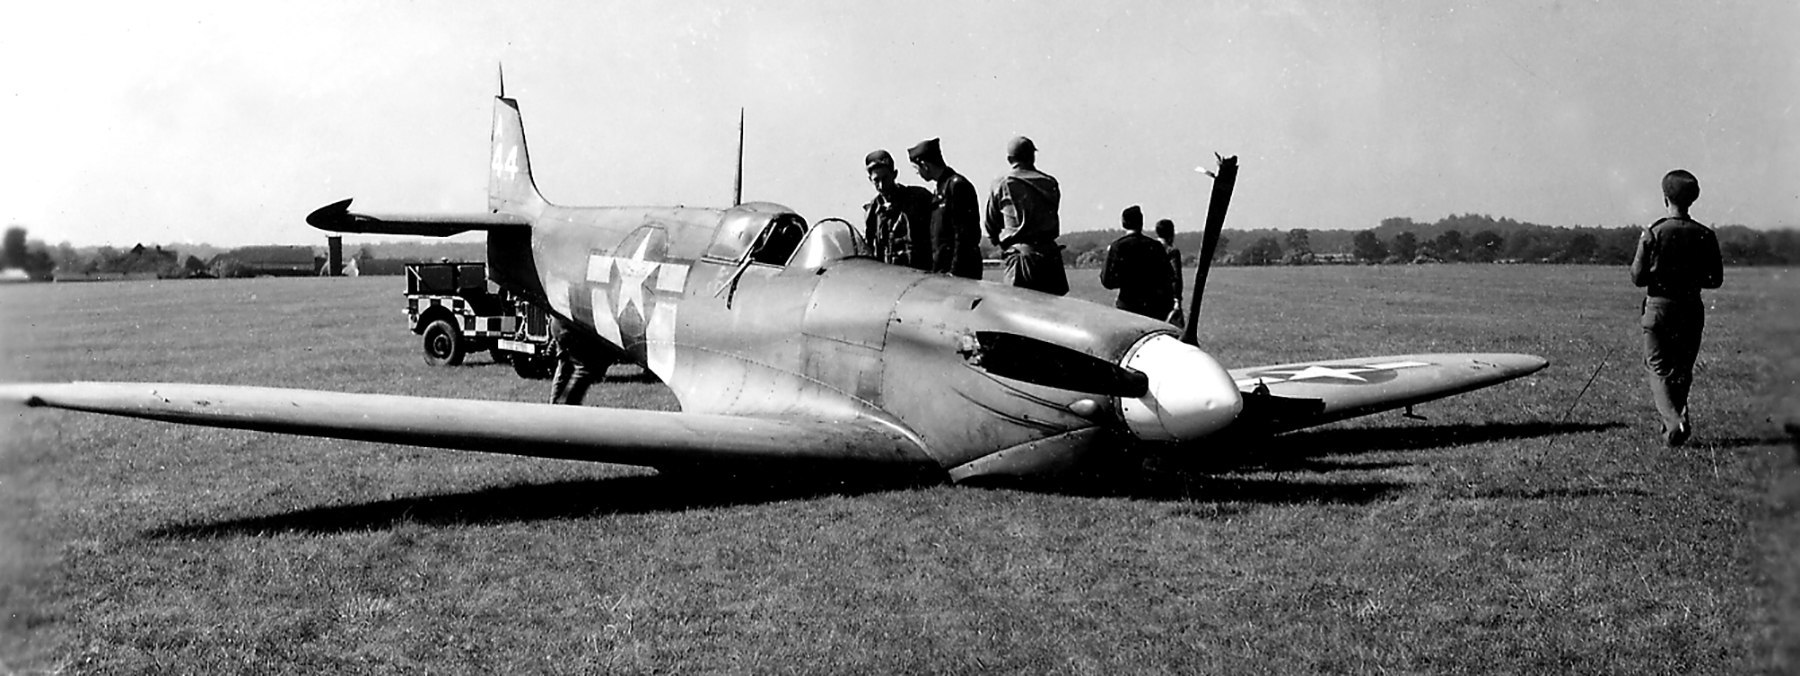 Spitfire PRXIT USAAF Belly Landing PA944 Oxfordshire 12th Sep 1944 01